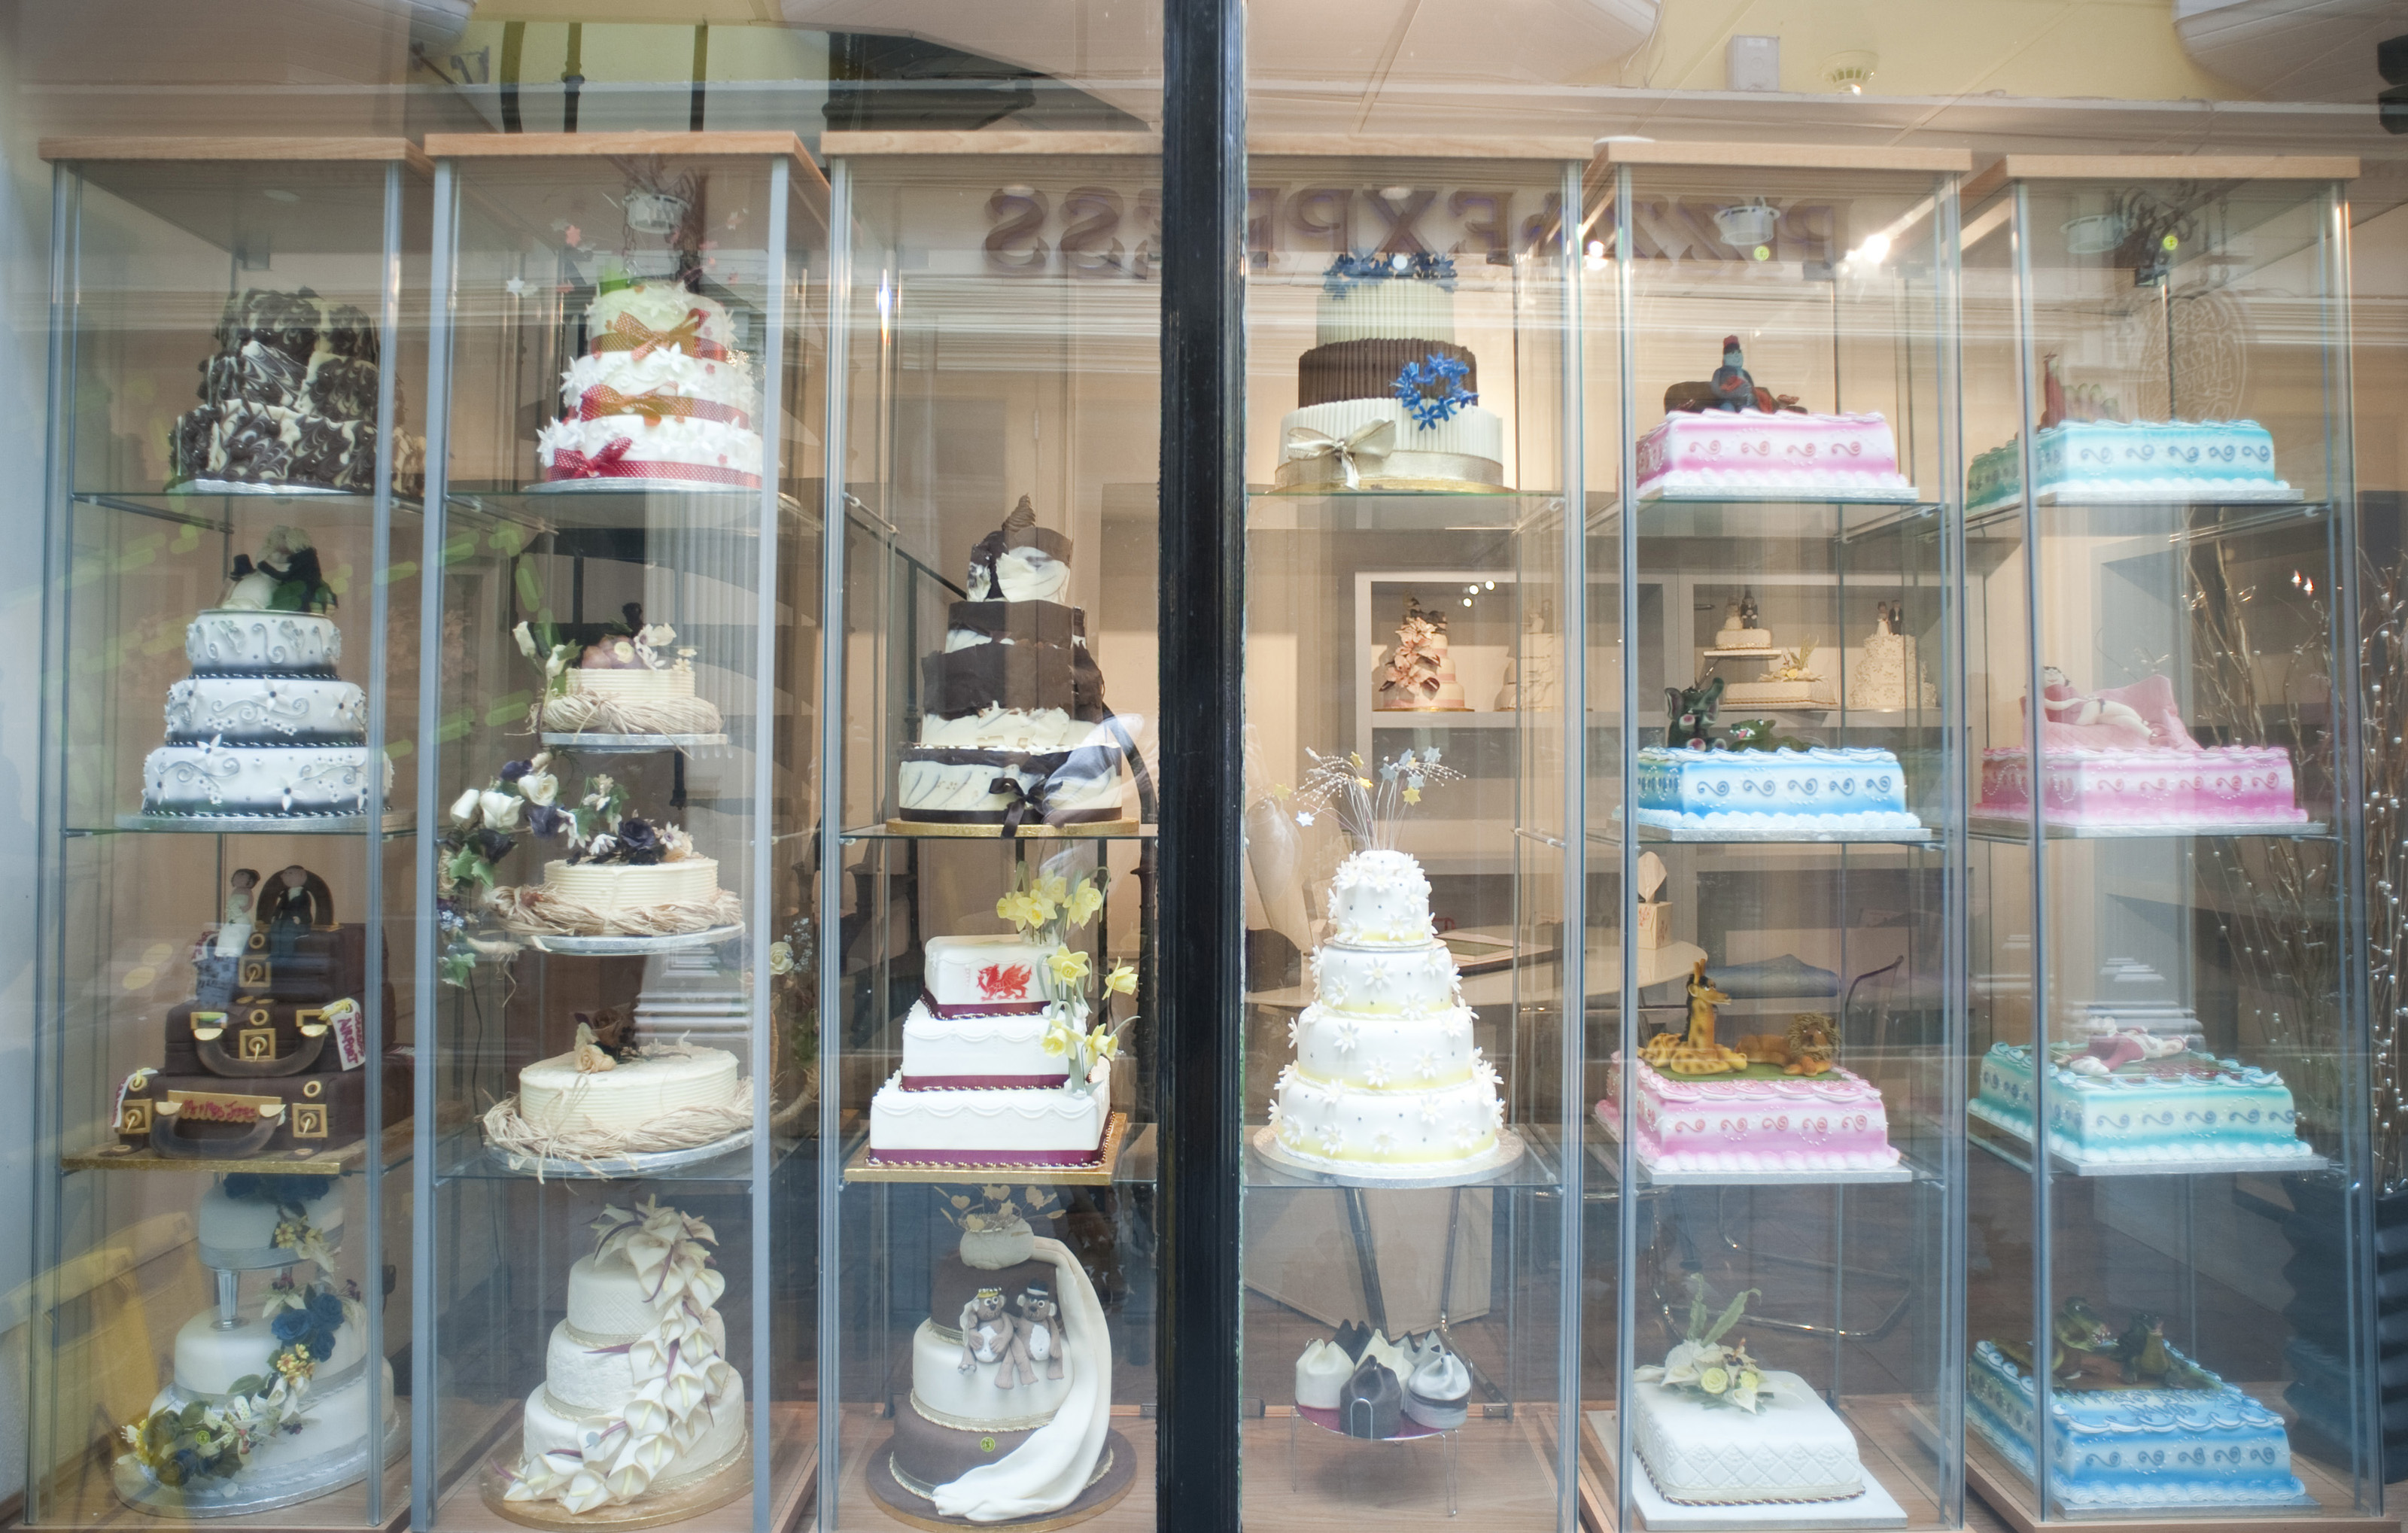 Window Display At A Cake Shop 7038 Stockarch Free Stock Photos